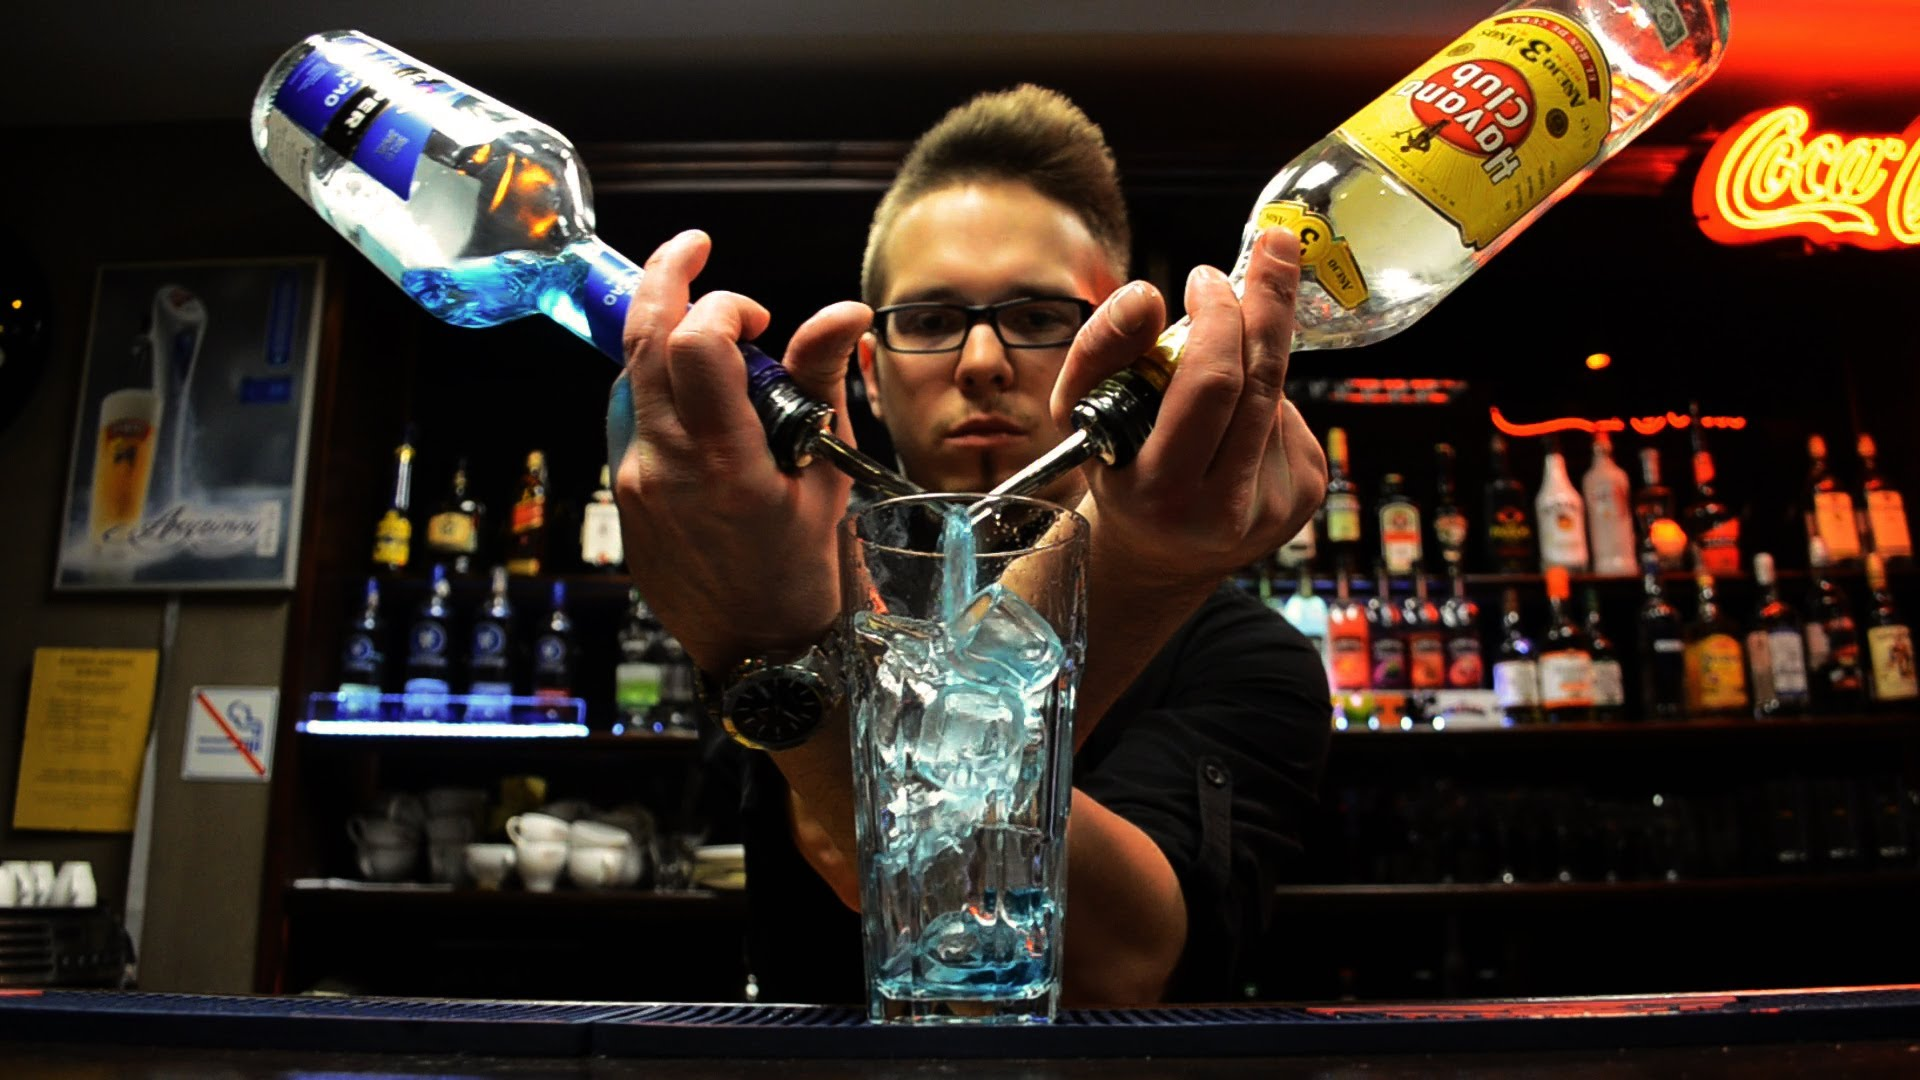 The Bartender Hates You and It's All Your Fault